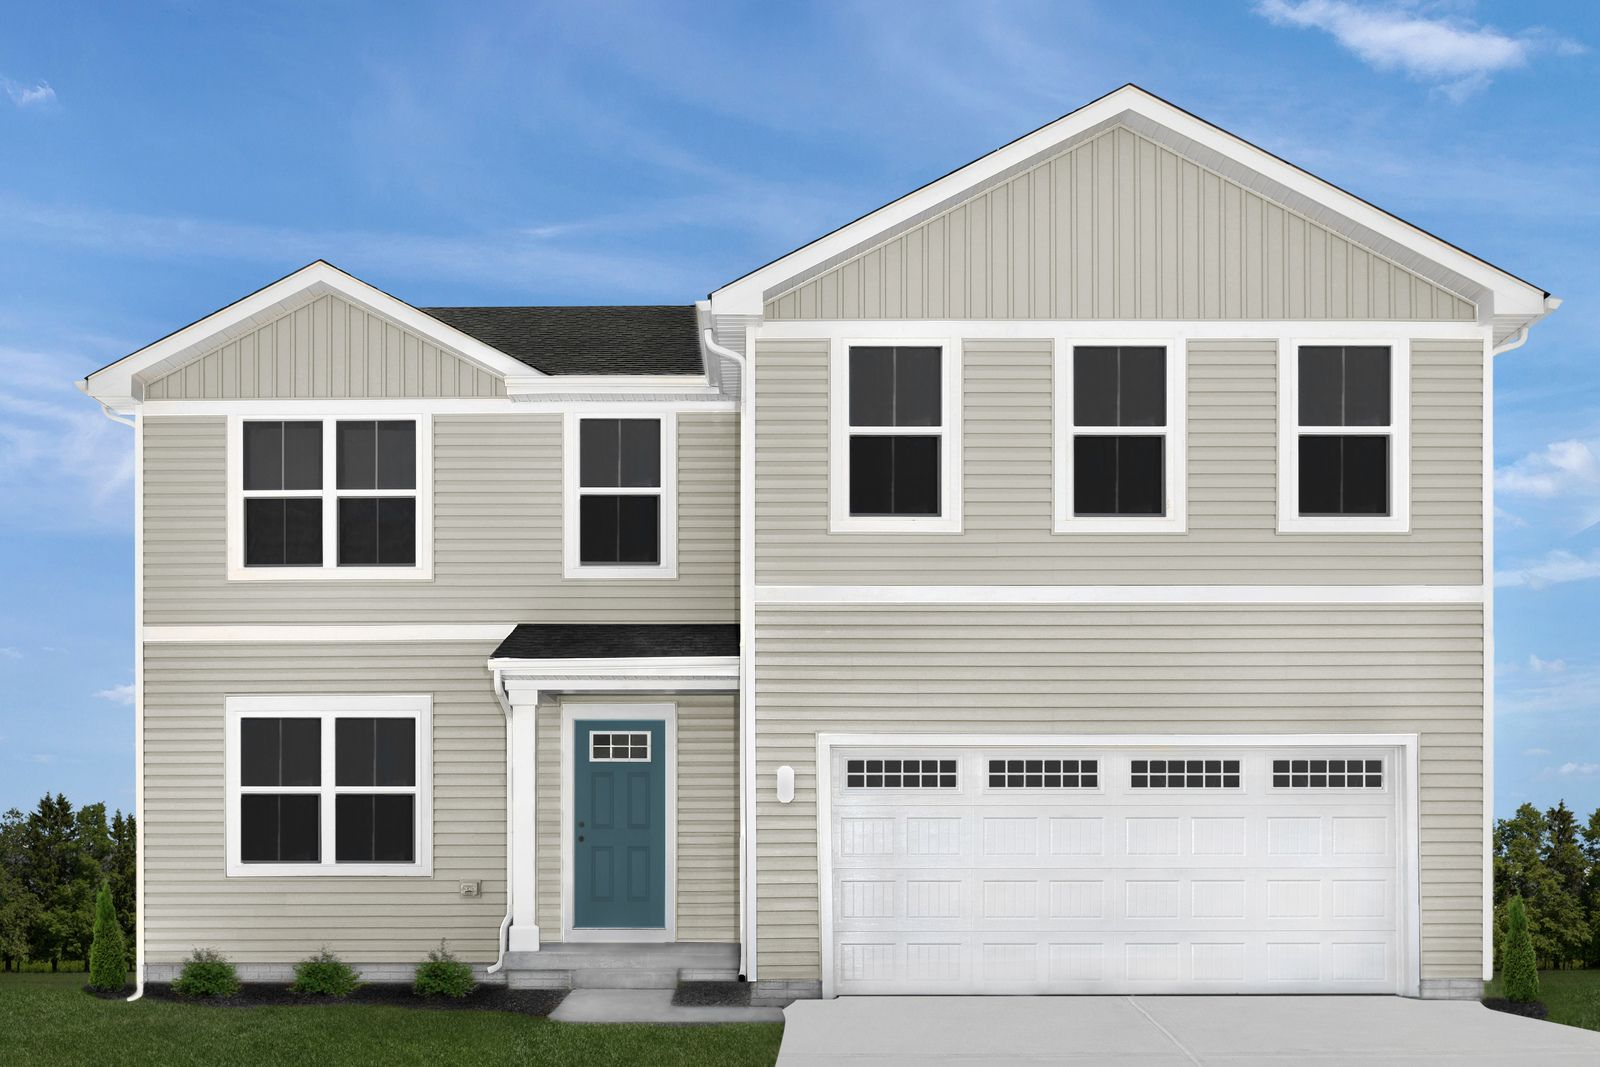 KENDALL HILLS: AFFORDABLE HOMES HAVE ARRIVED TO STAFFORD FROM THE LOW $400S!:The lowest priced, new, single-family homes in Stafford County! Backyard space in a private, wooded community conveniently located near Route 1 & I-95.Schedule your visit today!